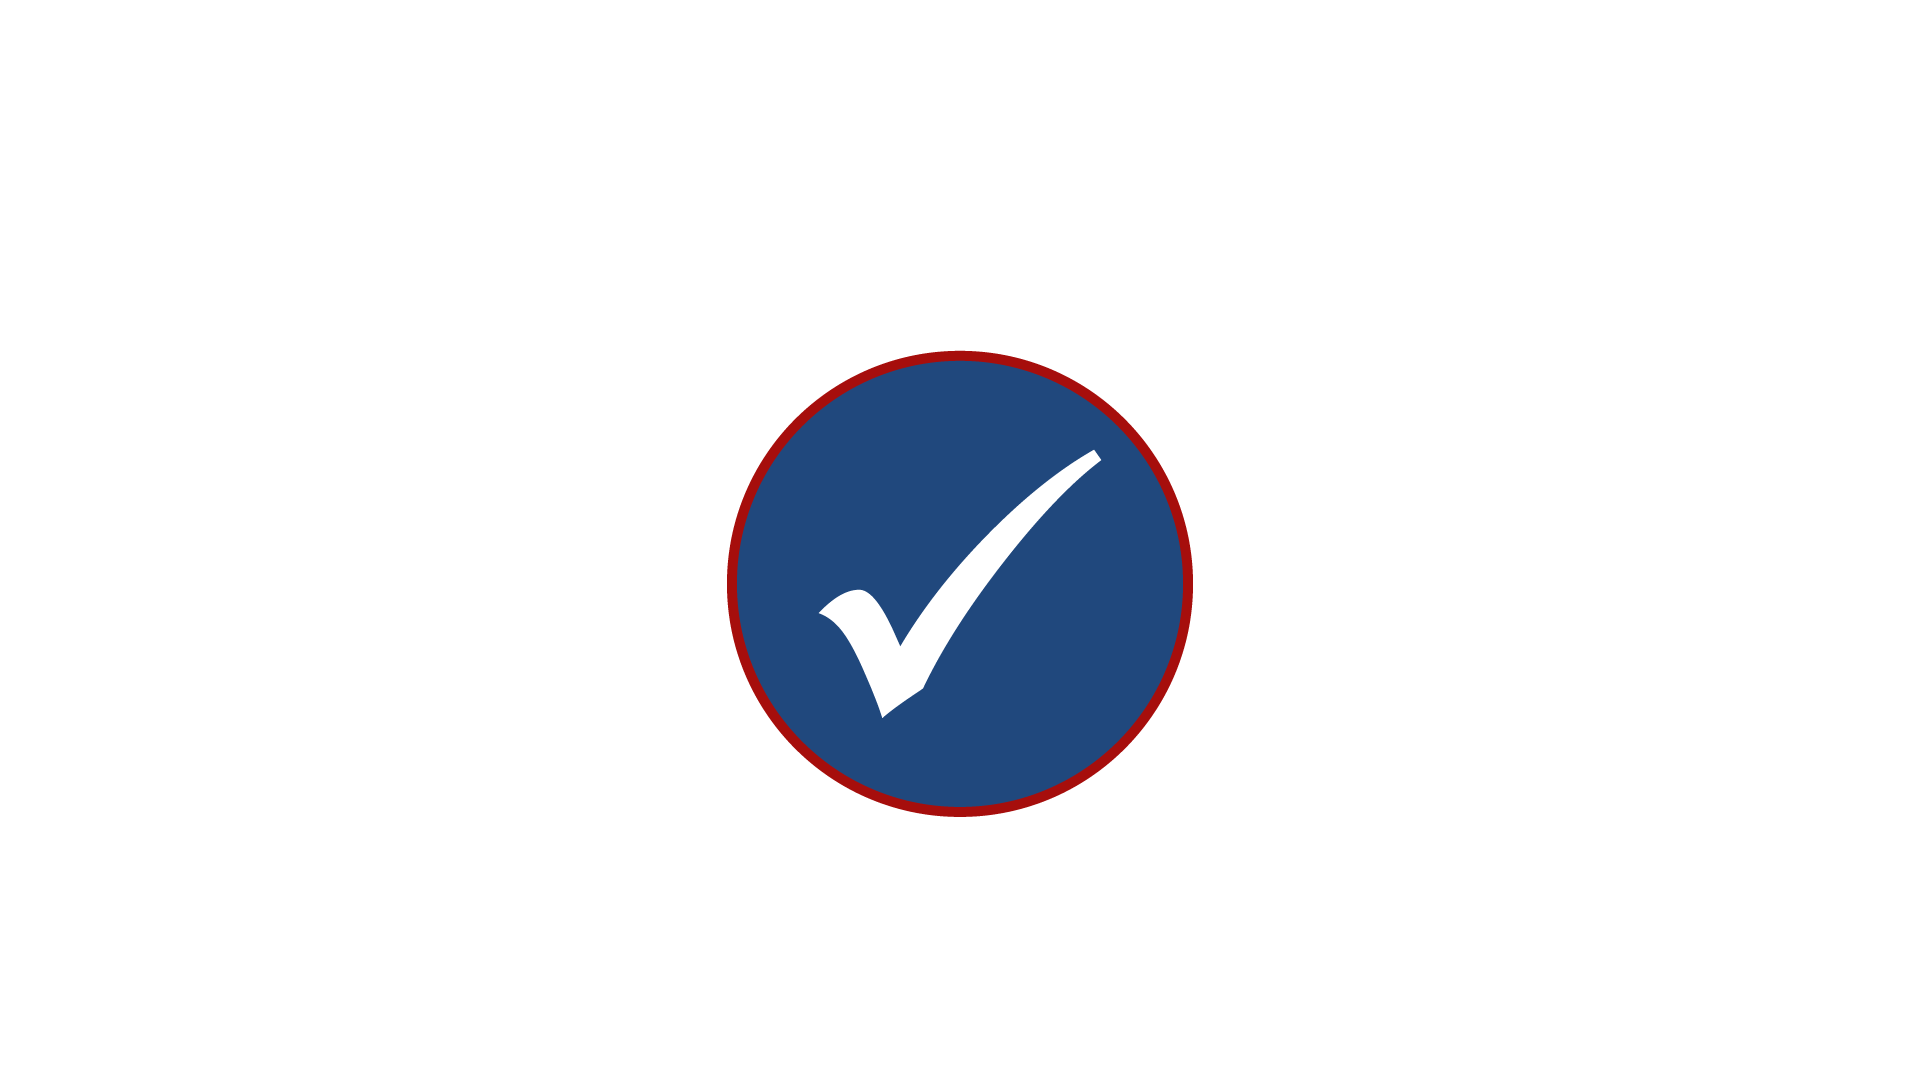 candidate insights, check